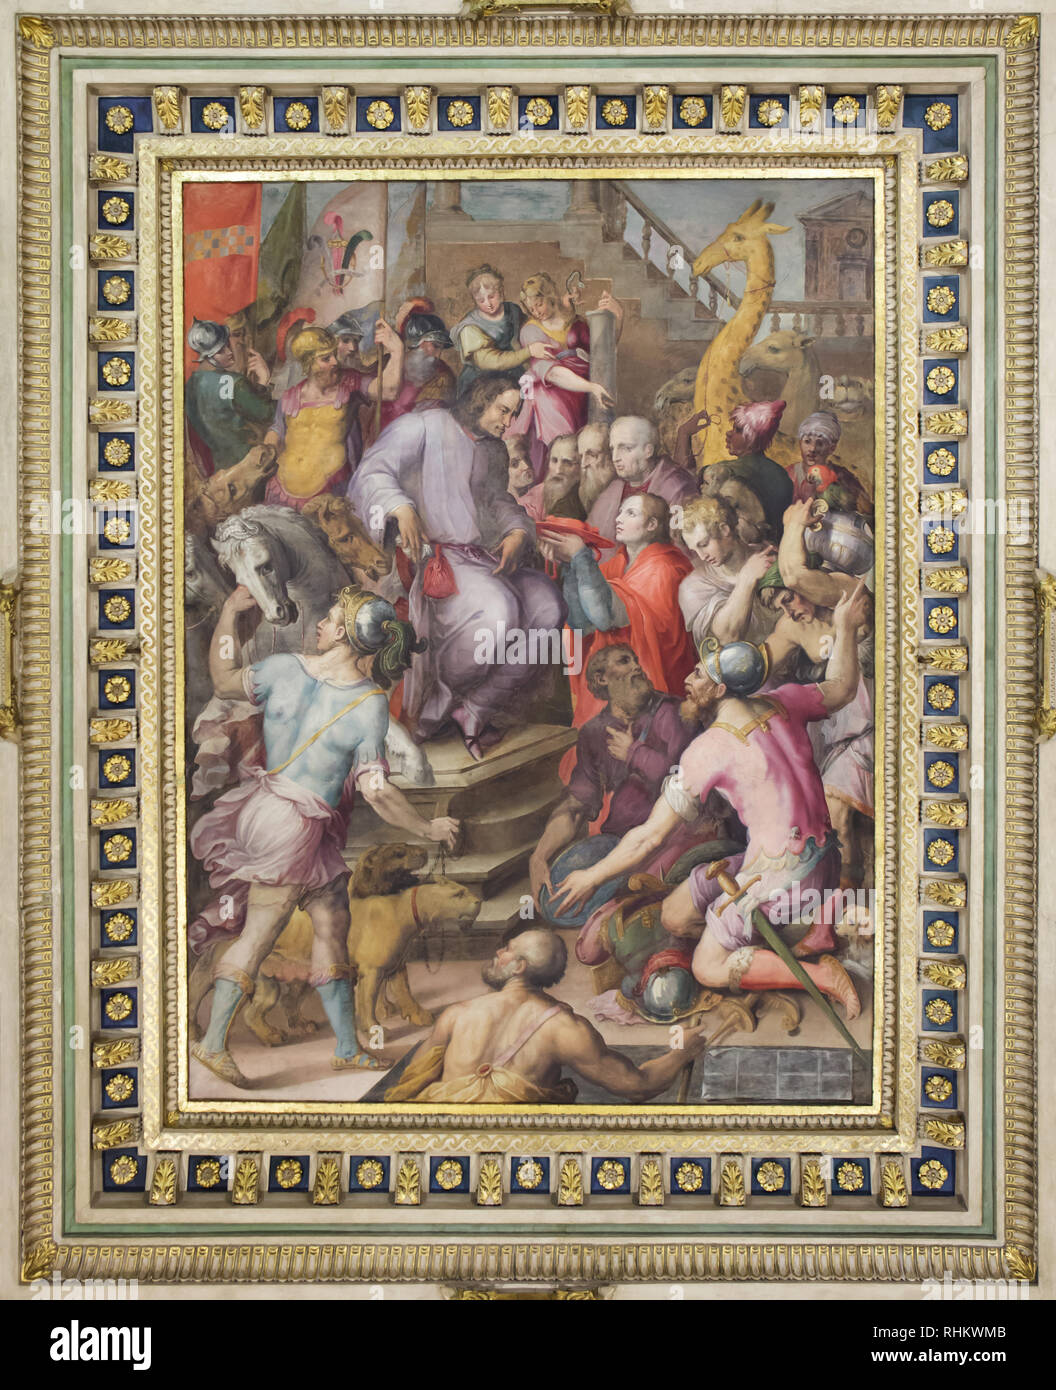 Ambassadors of the most powerful foreign states paying tribute to Lorenzo the Magnificent. Ceiling painting by Italian Mannerist painters Giorgio Vasari and Marco Marchetti da Faenza (1556-1558) in the Room of Lorenzo the Magnificent (Sala di Lorenzo il Magnifico) in the Apartments of Pope Leo X (Quartiere di Leone X) in the Palazzo Vecchio in Florence, Tuscany, Italy. The gift laid before Lorenzo the Magnificent include the cardinal's hat which the pope granted to his son Giovanni, the future pope Leo X. Stock Photo